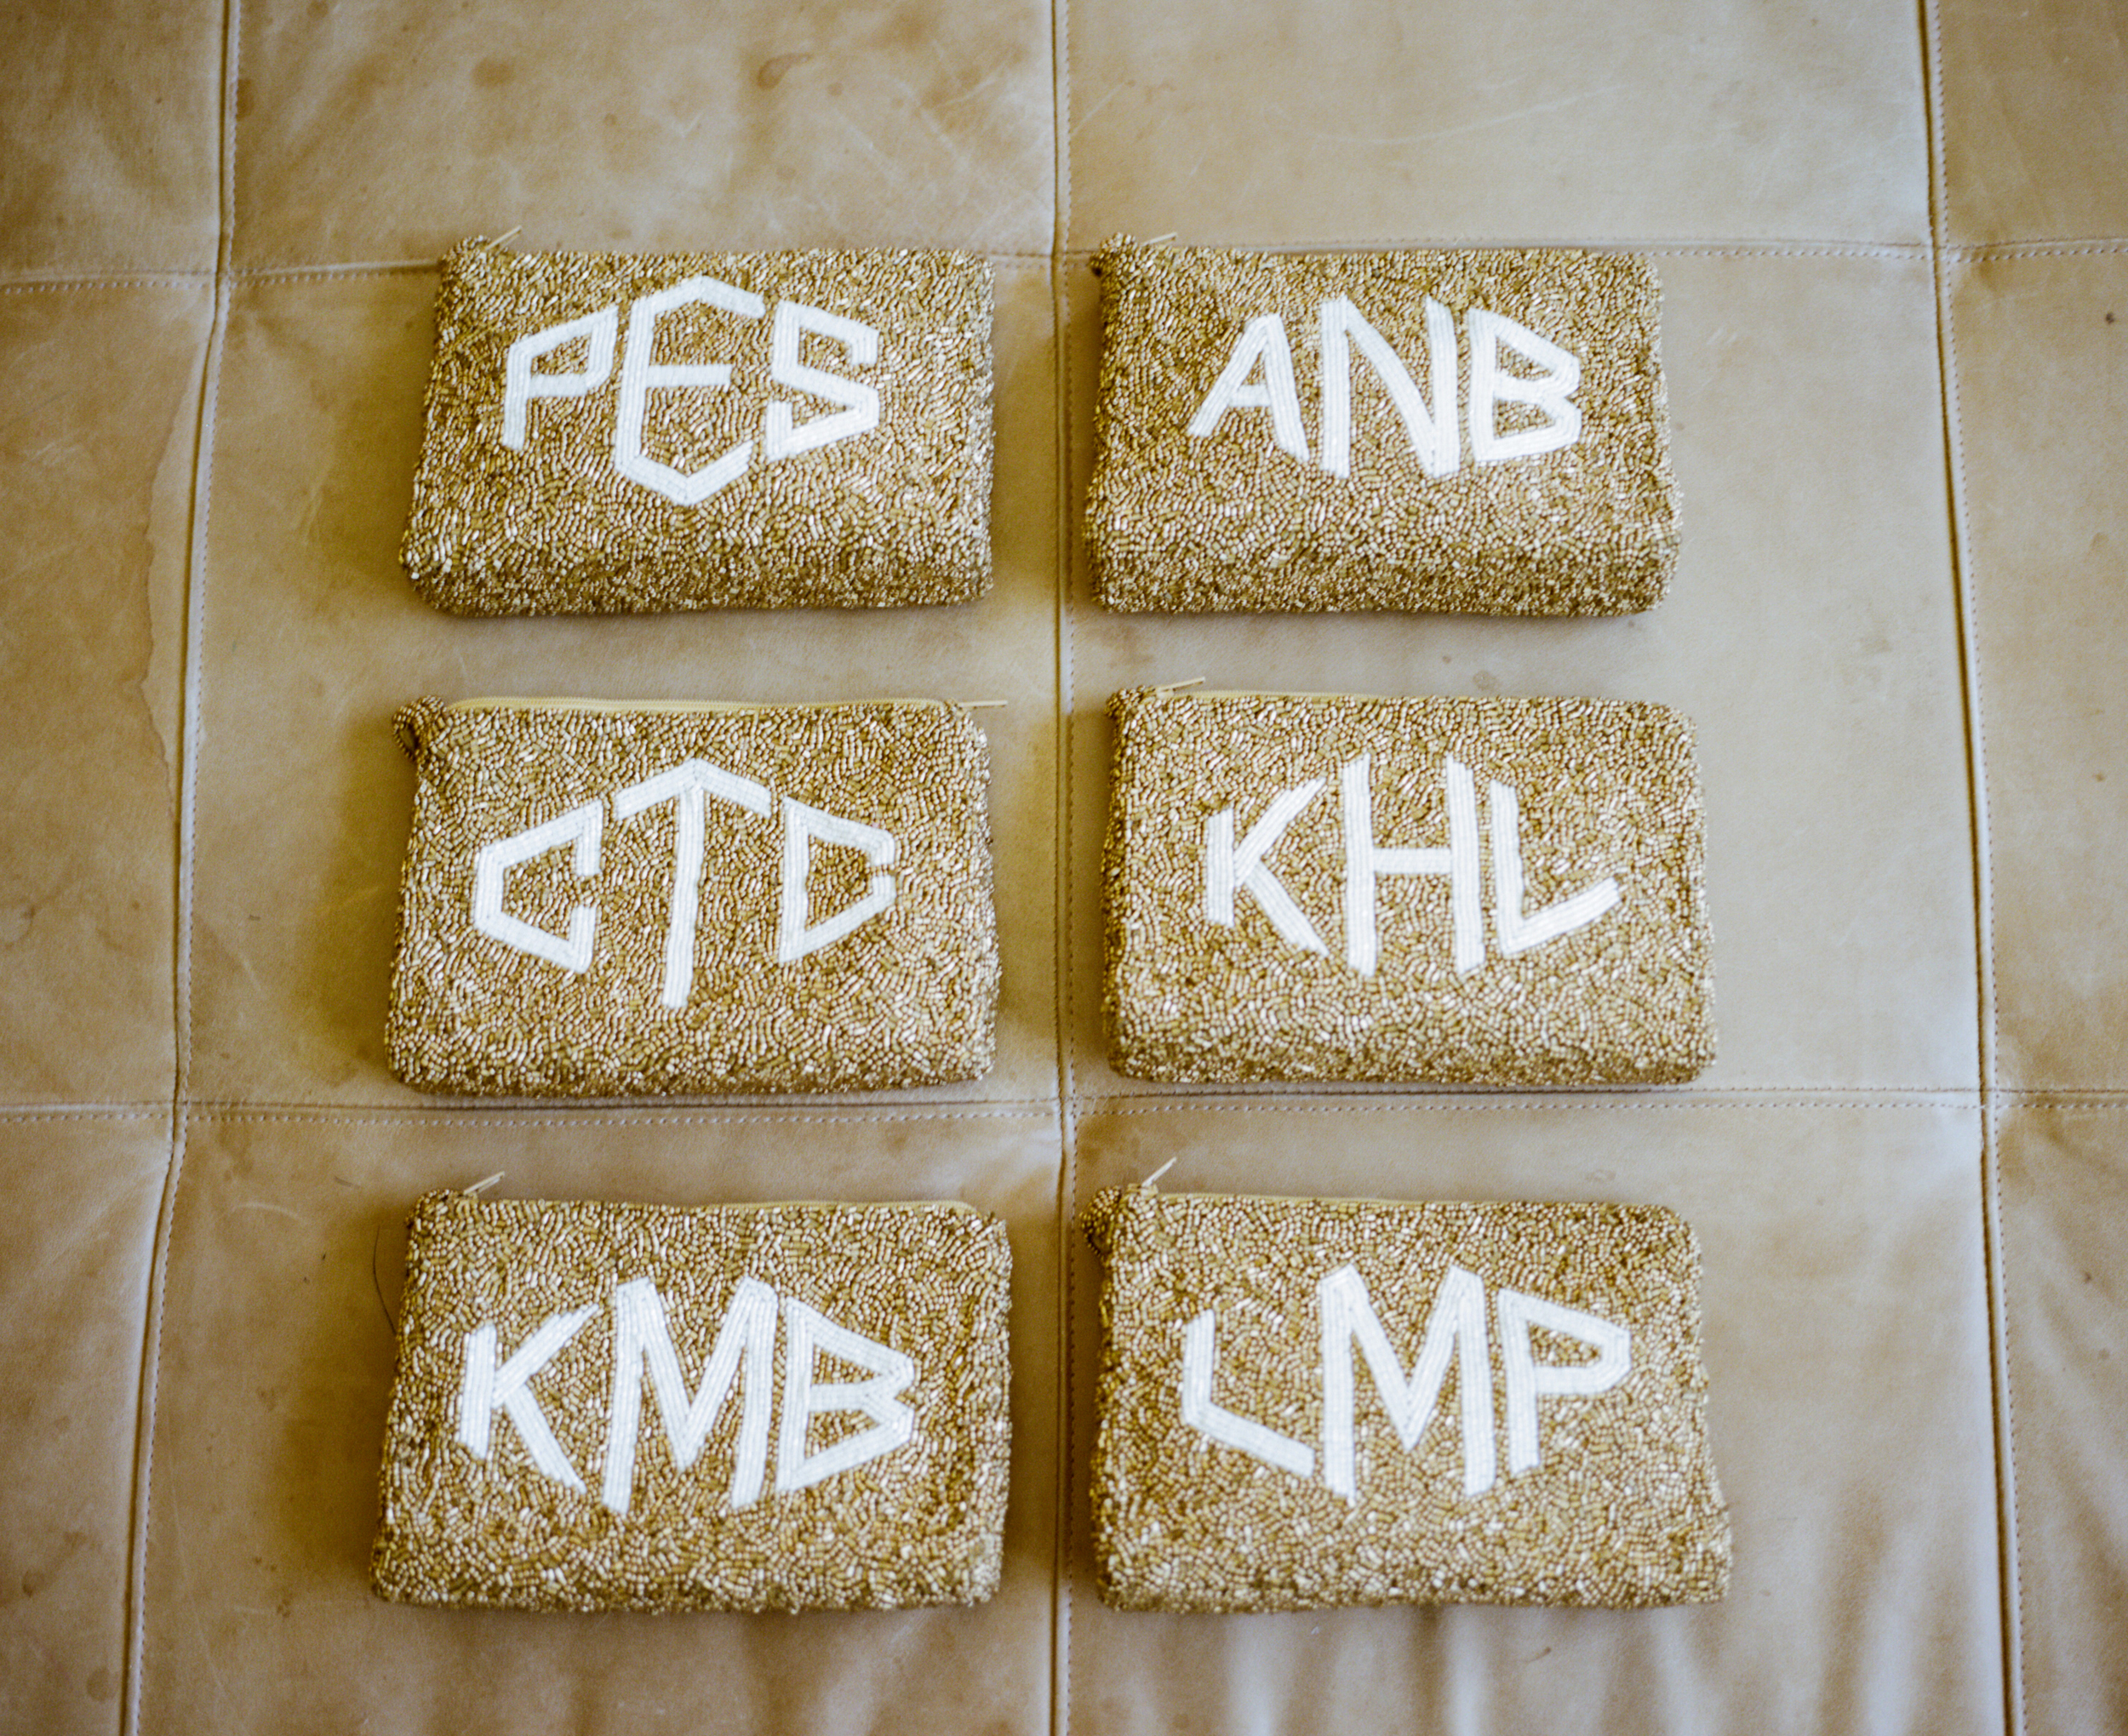 Kelly + Josh   Fall wedding at the Park Hyatt Beaver Creek   Clutches by Moyna New York from Little White Dress   Ash Imagery